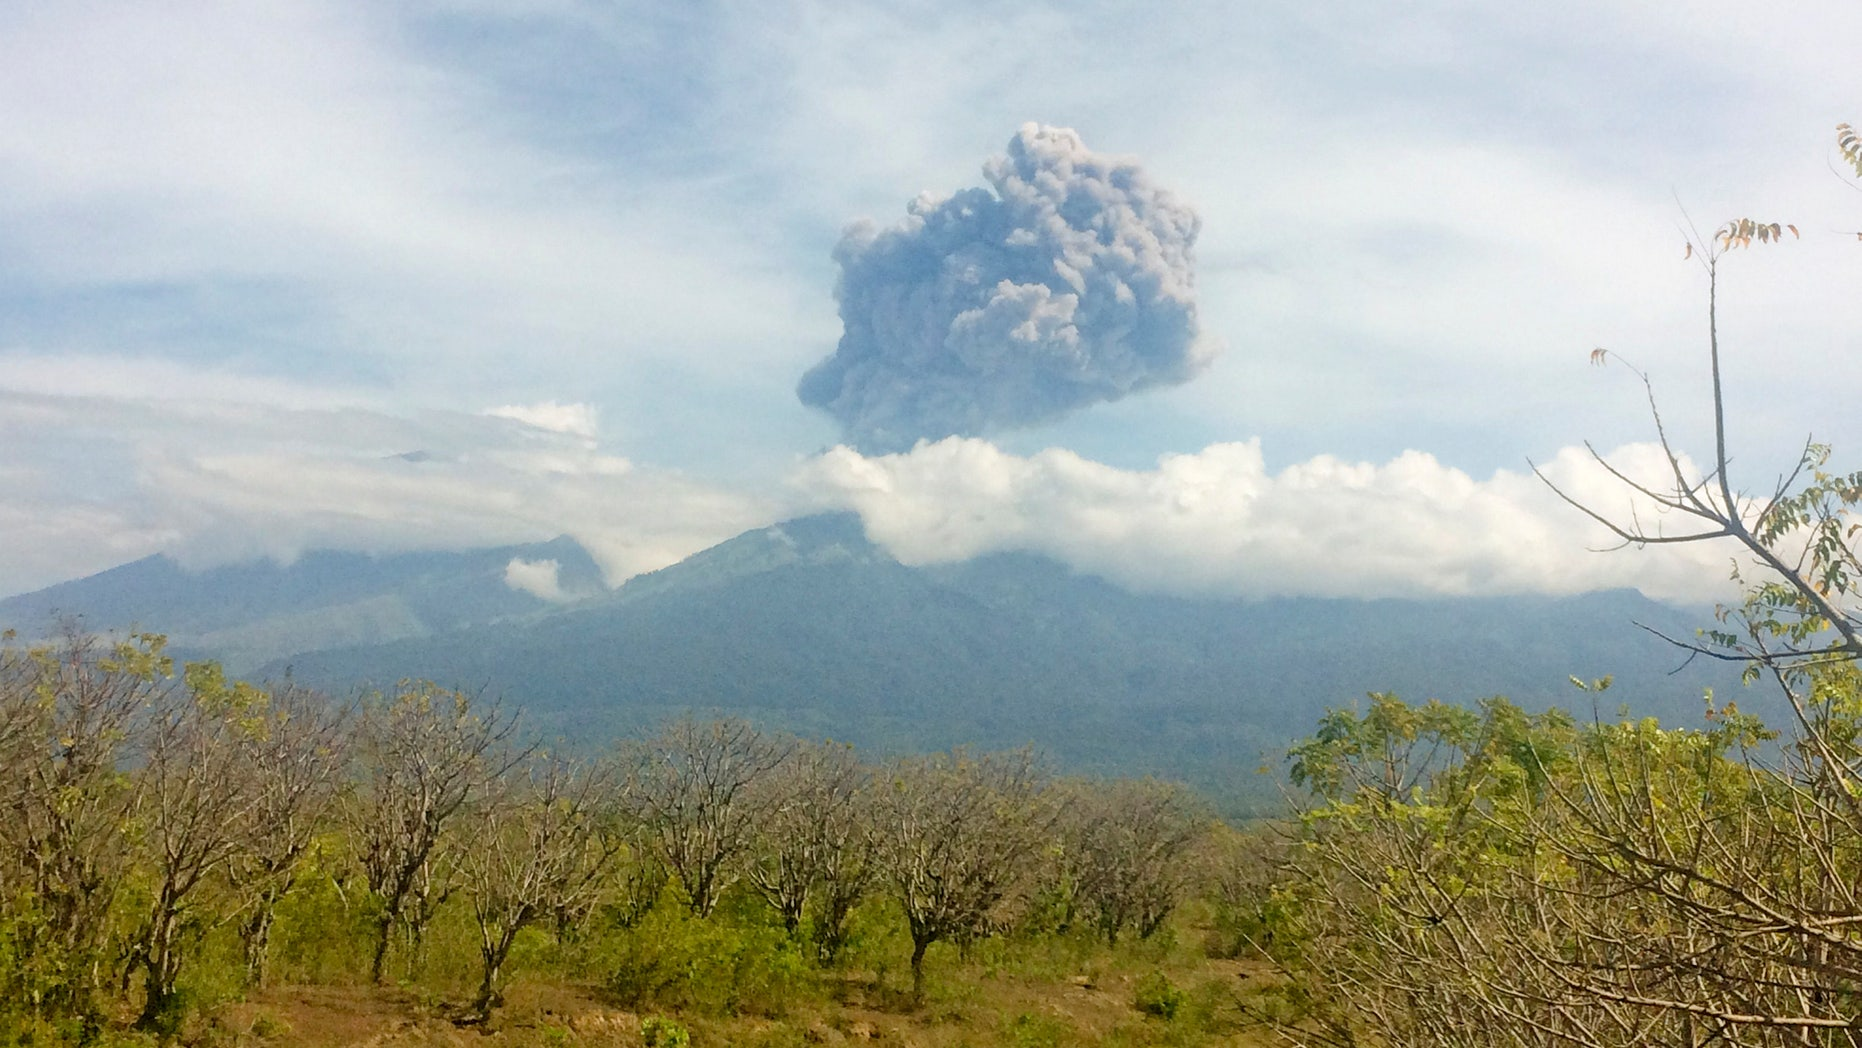 Mount Barujari, located inside Mount Rinjani volcano, is seen erupting from Bayan district, North Lombok, Indonesia.